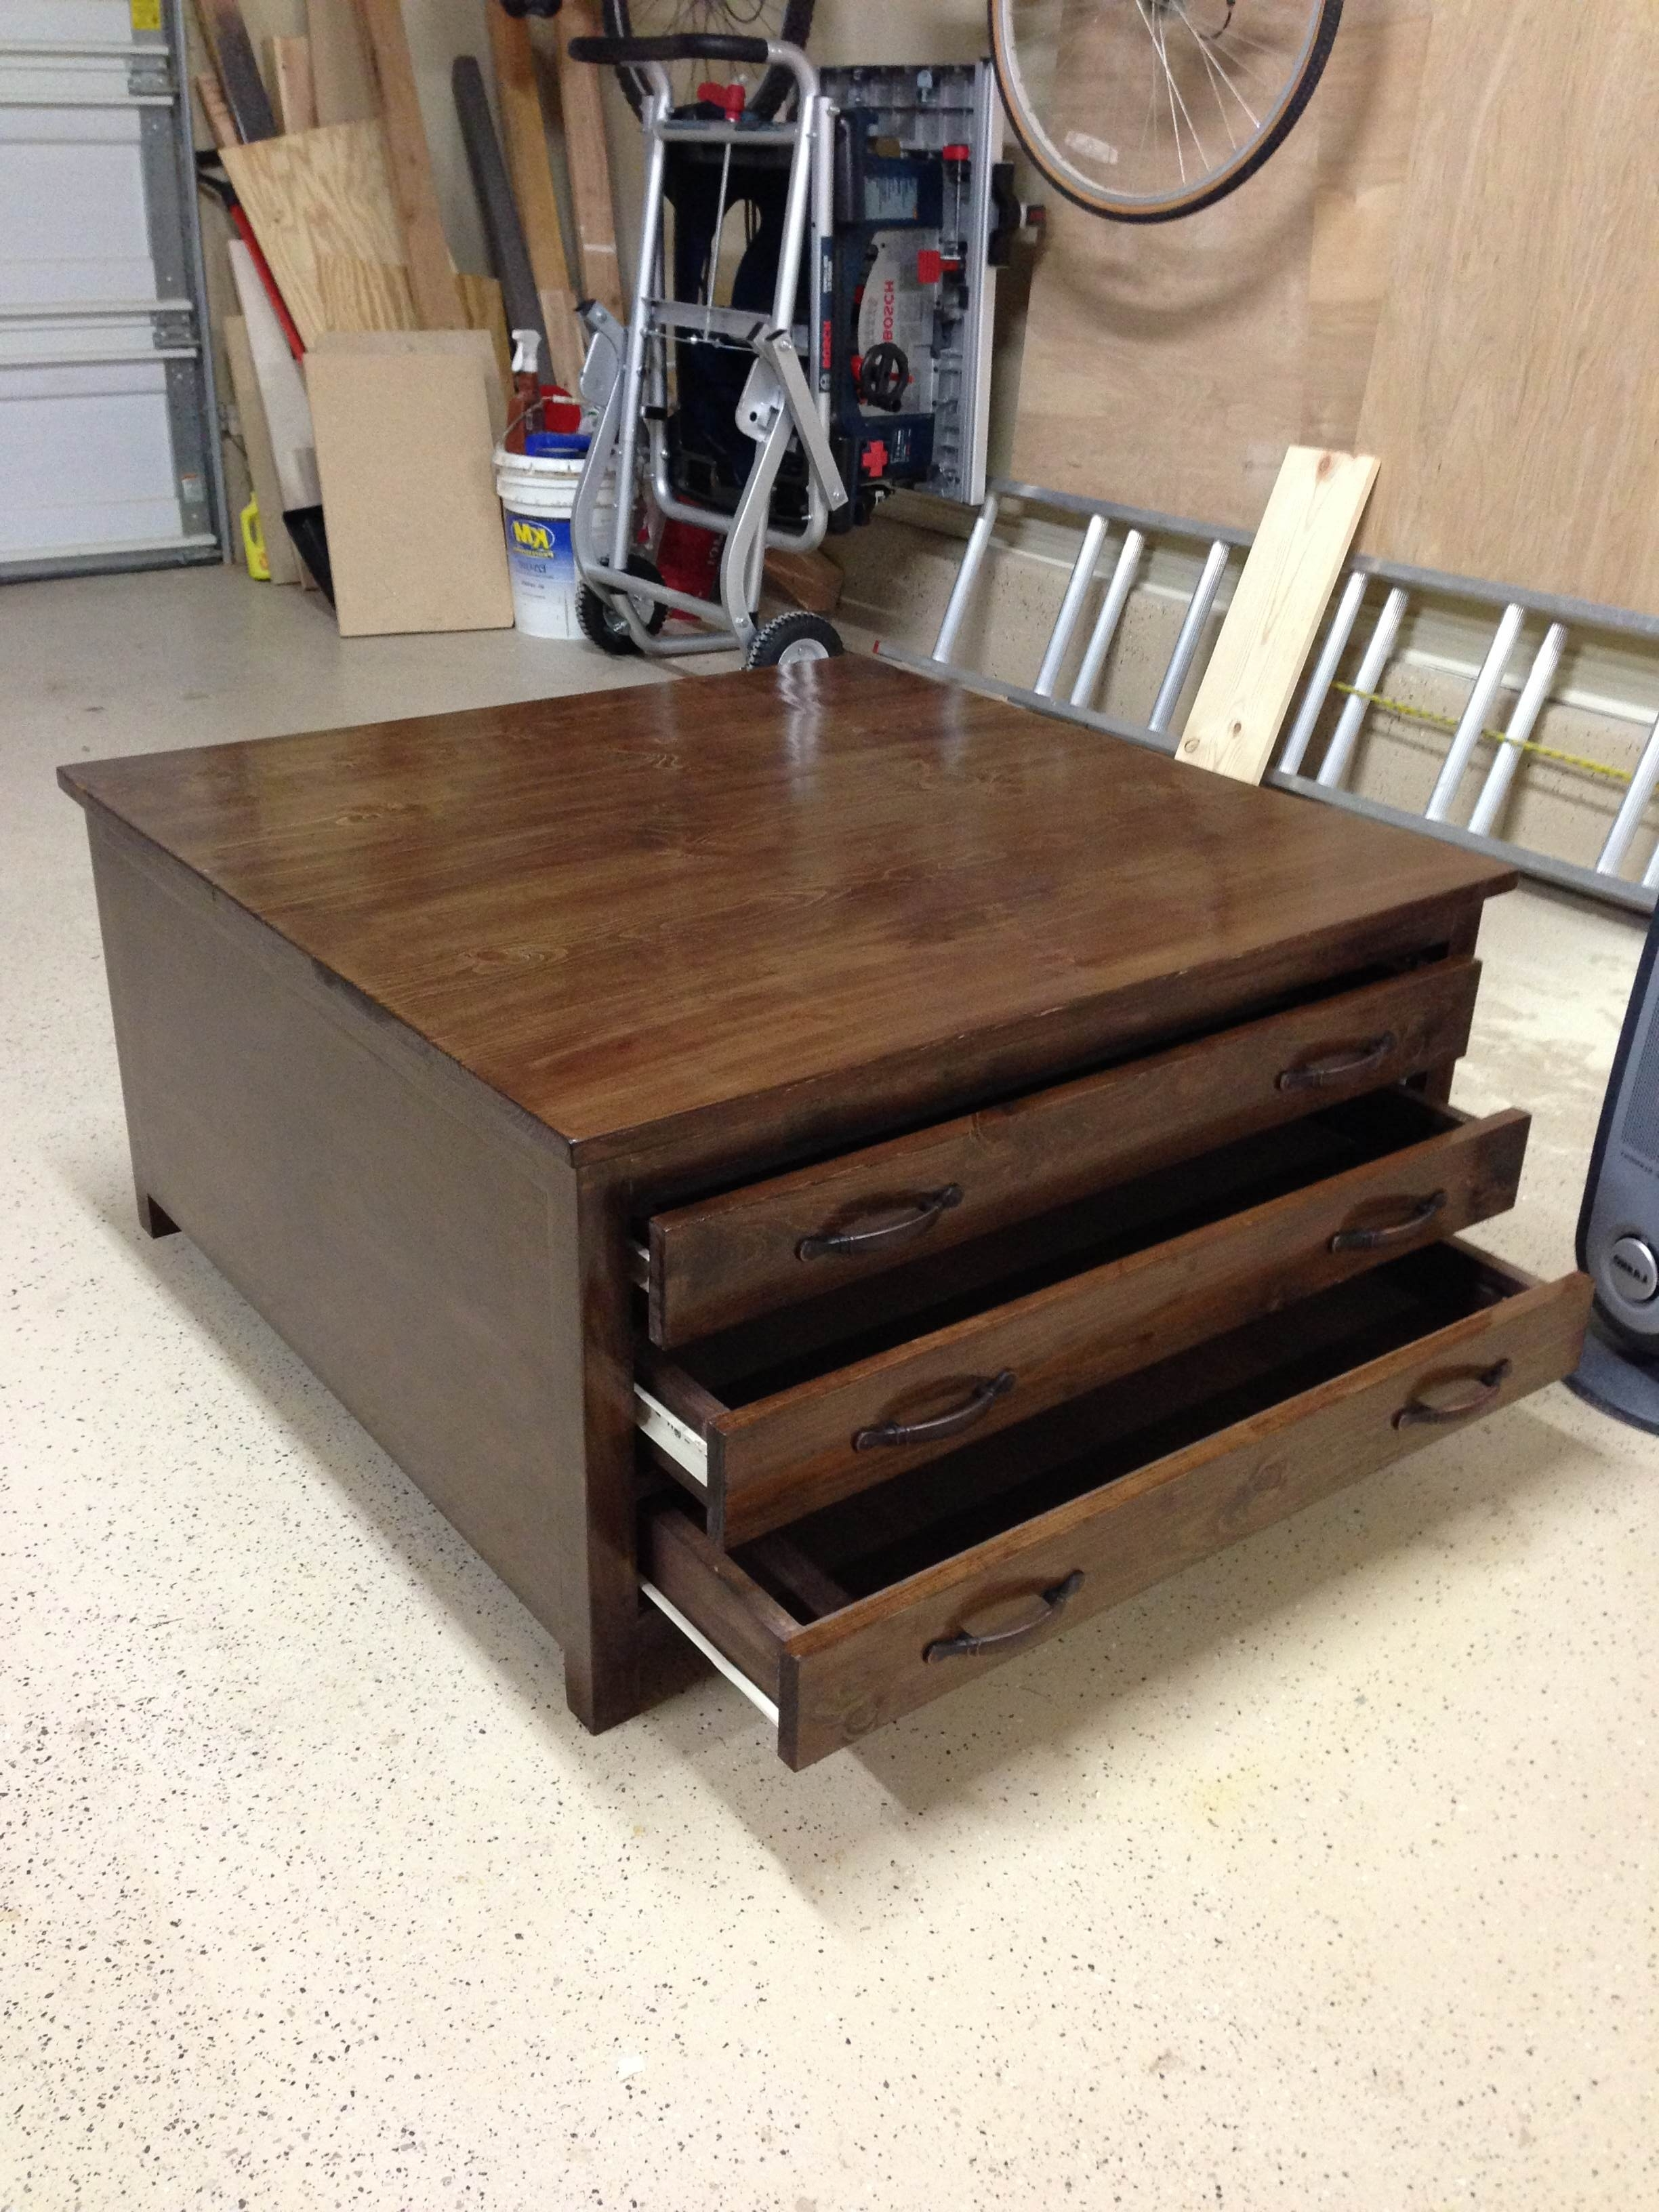 6 Drawer Coffee Table – Diy Projects (View 1 of 20)